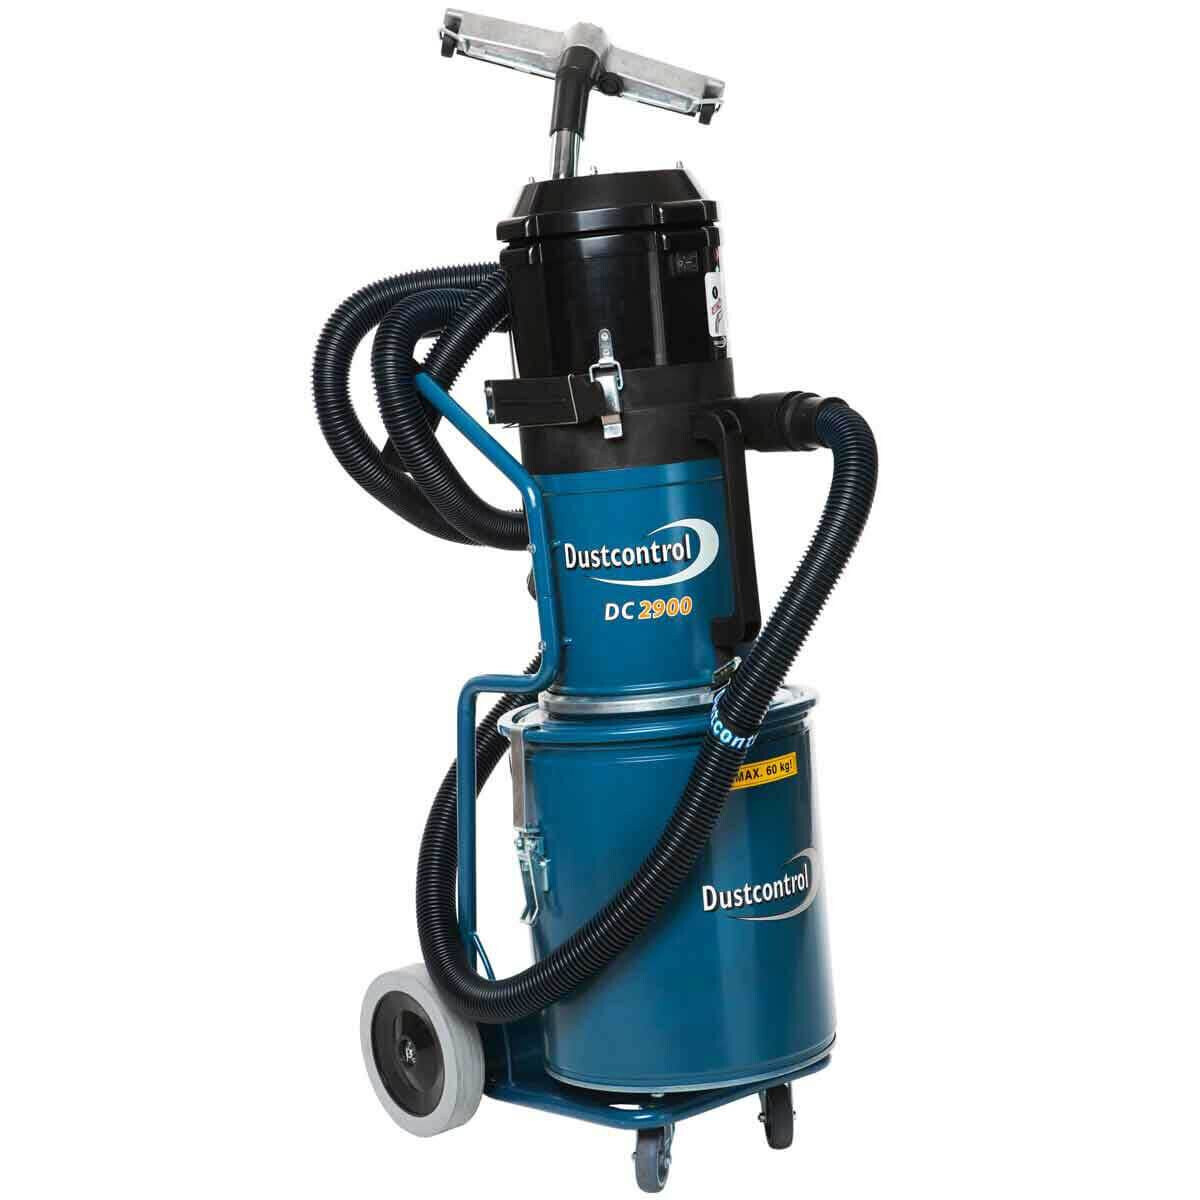 DustControl DC 2900A Canister-Style Dust Extractor